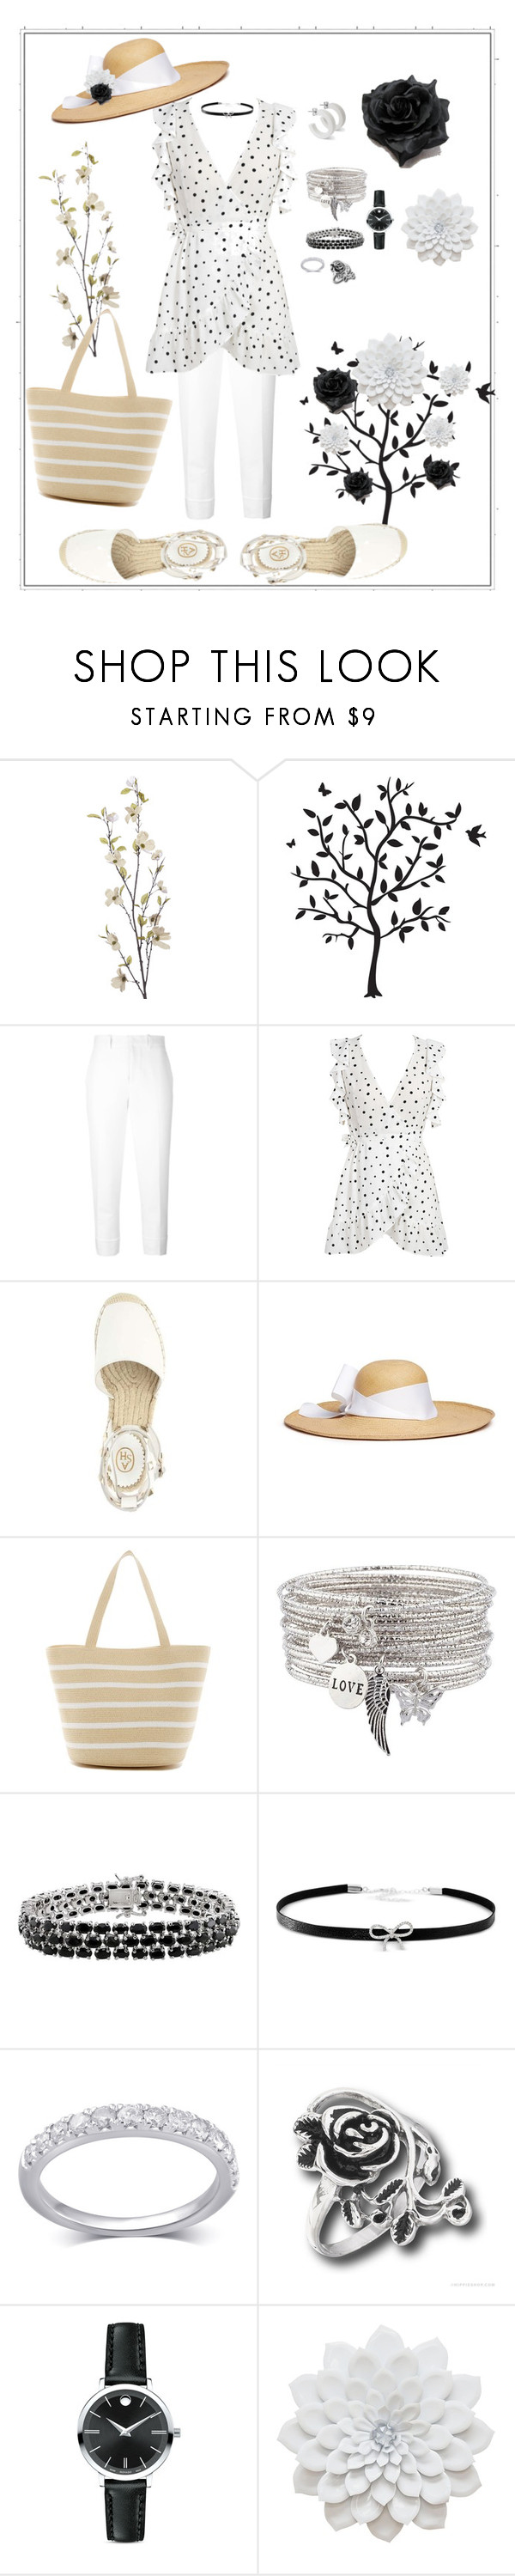 """Ruffle Tops - VII"" by mary-kay-de-jesus ❤ liked on Polyvore featuring Pier 1 Imports, Godinger, Marni, WithChic, Sensi Studio, Magid, Giani Bernini and Movado"